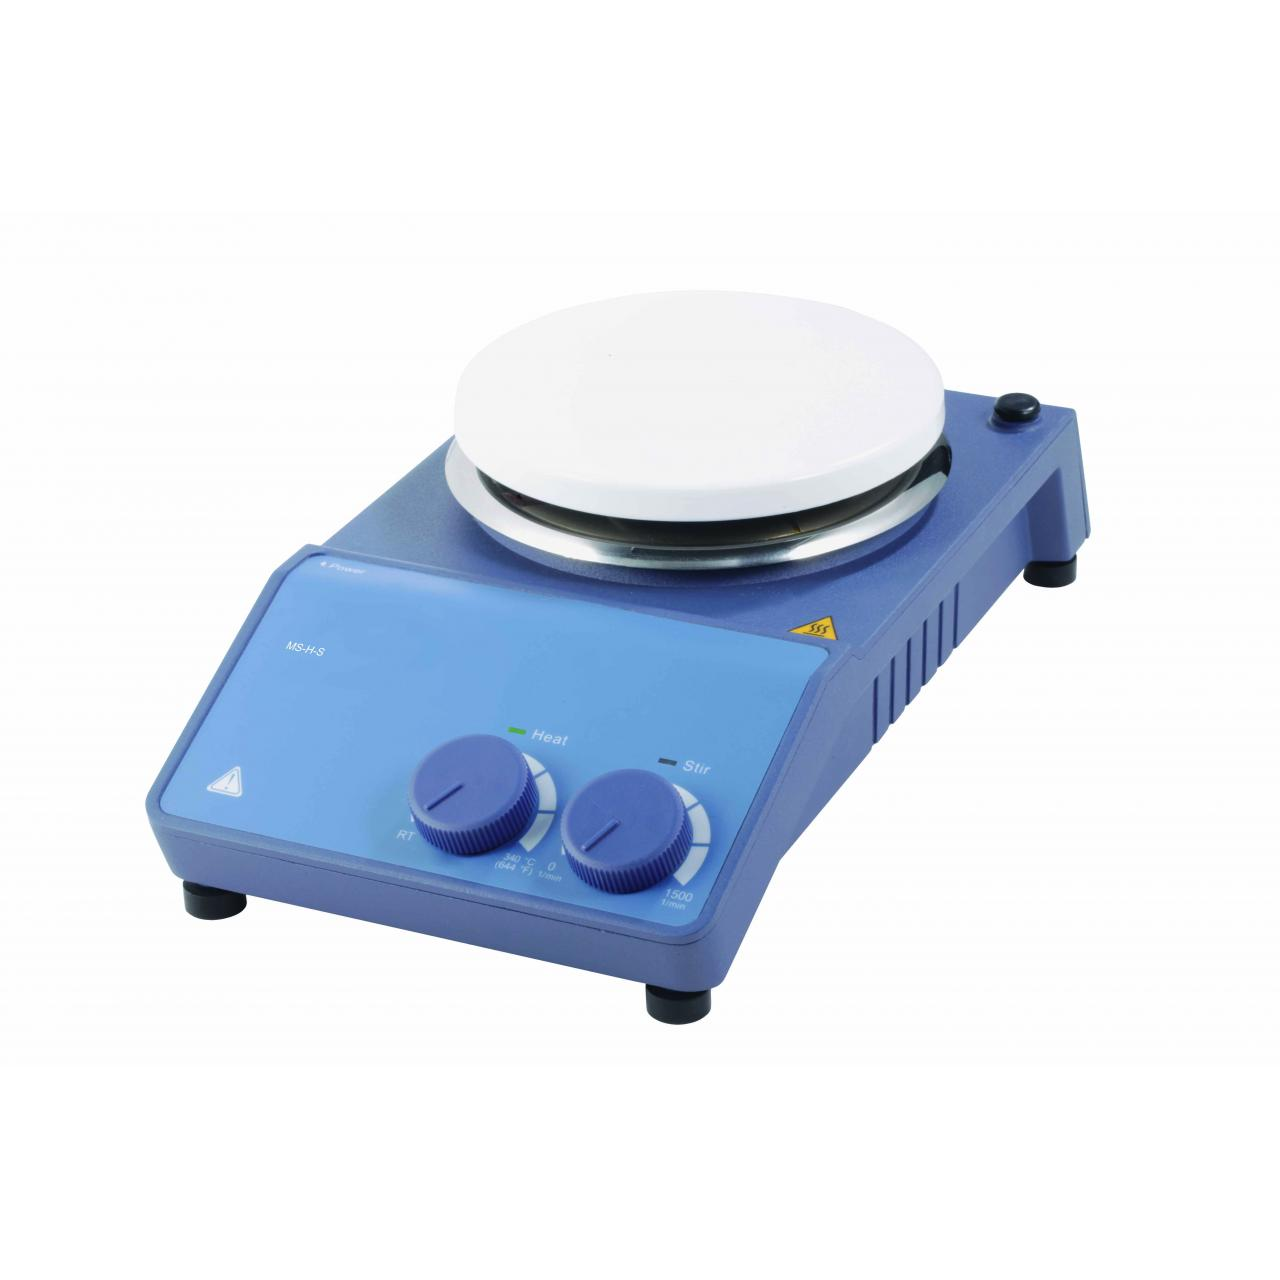 China Clinic Laboratory Equipment - 340 C LT-H-S Hotplate Ma on sale